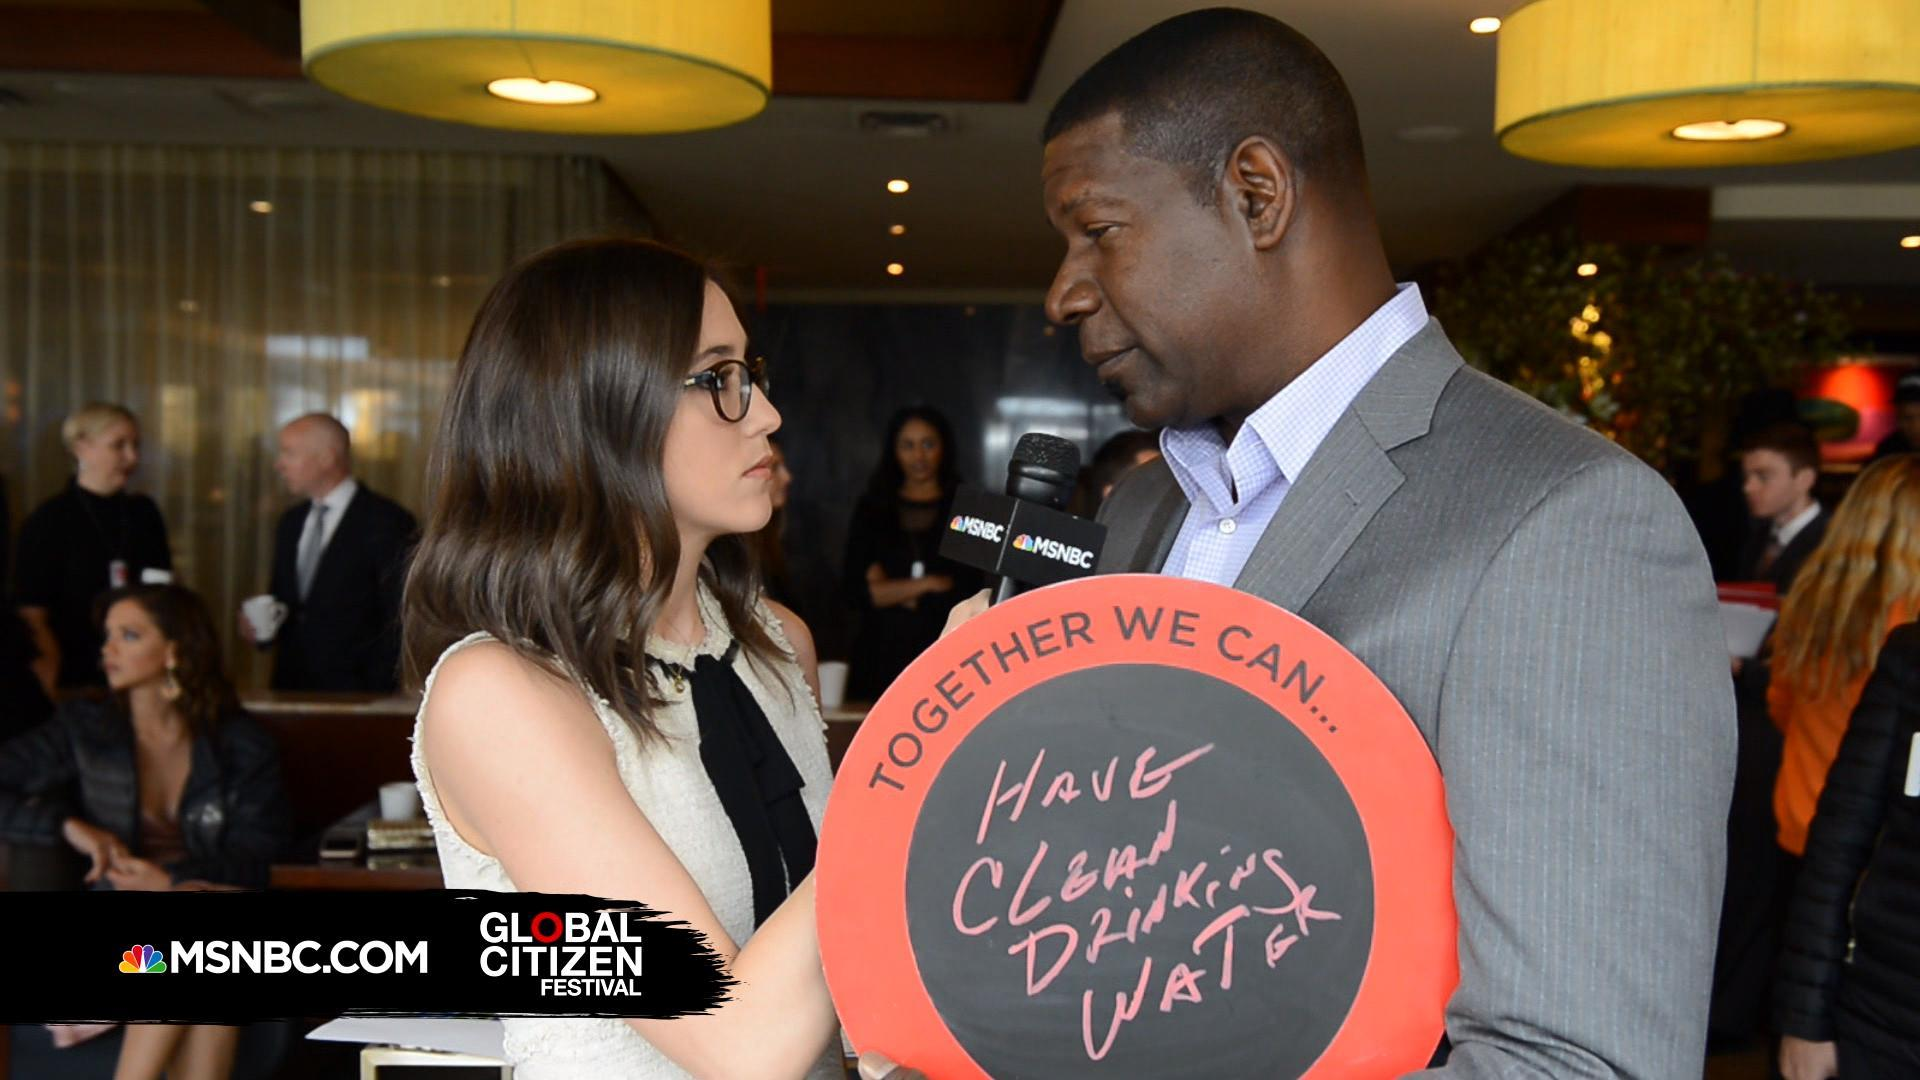 Dennis Haysbert Strives For Clean Water